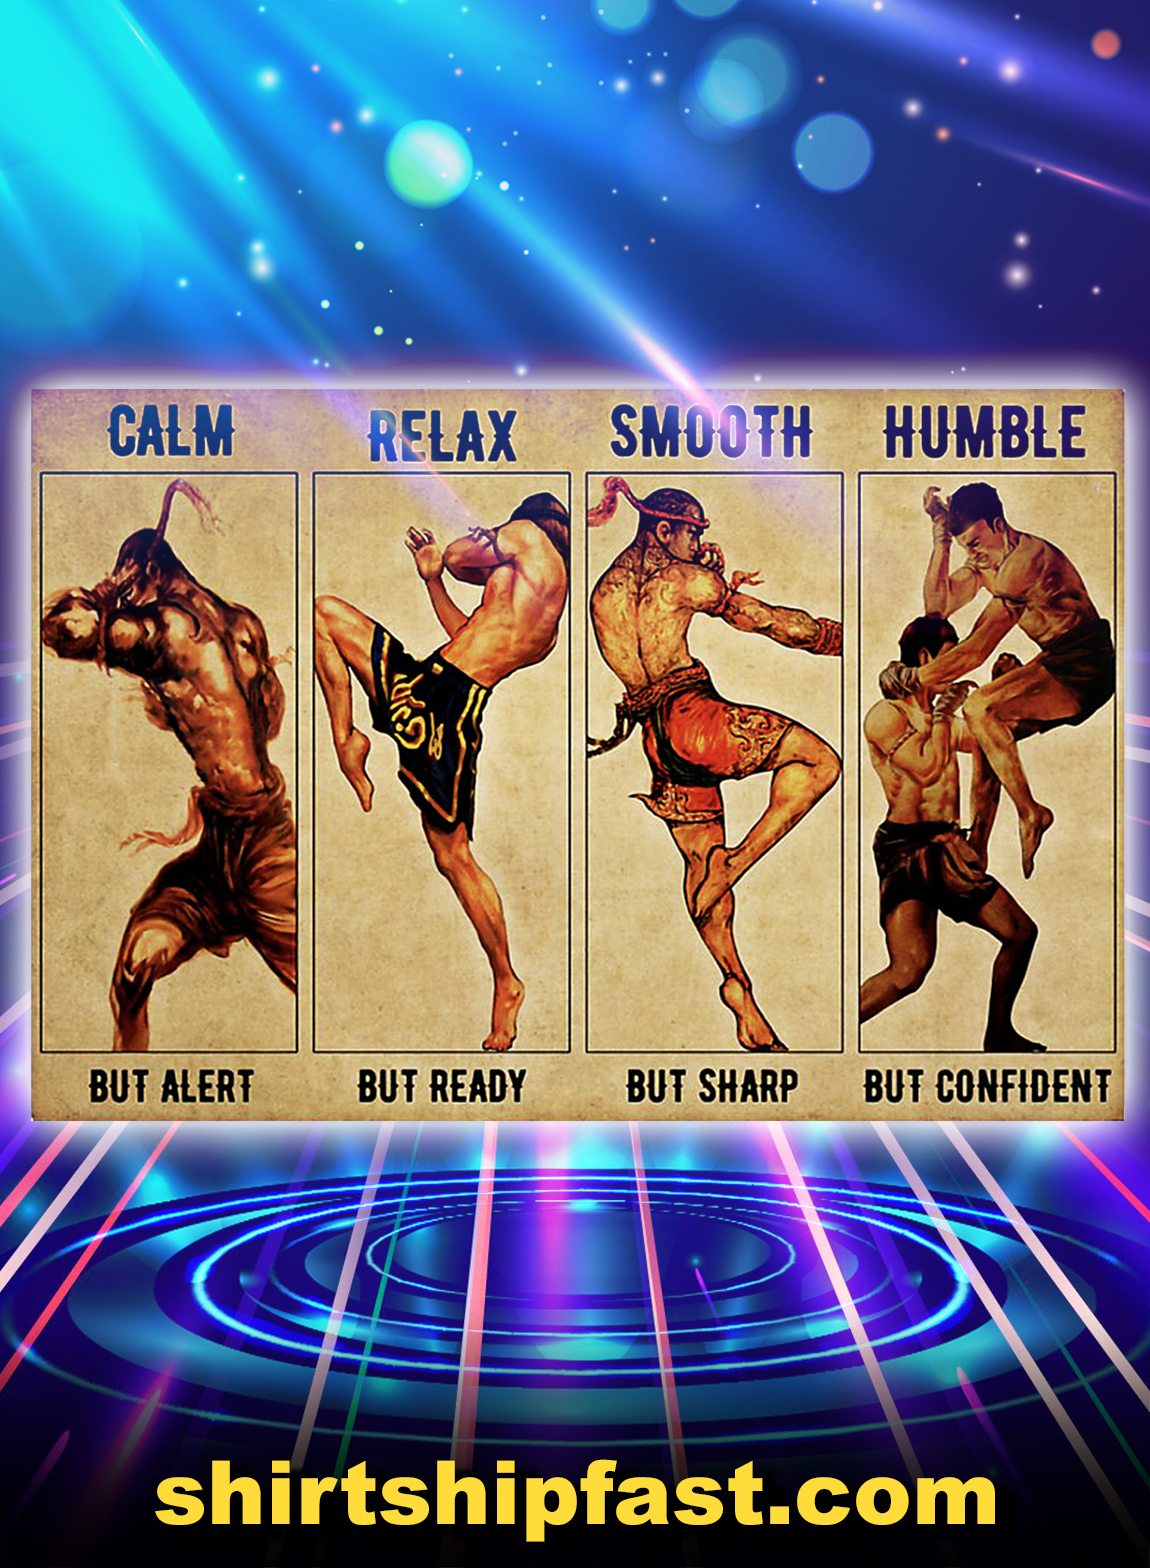 Poster Muay Thai Calm relax smooth humble - A2